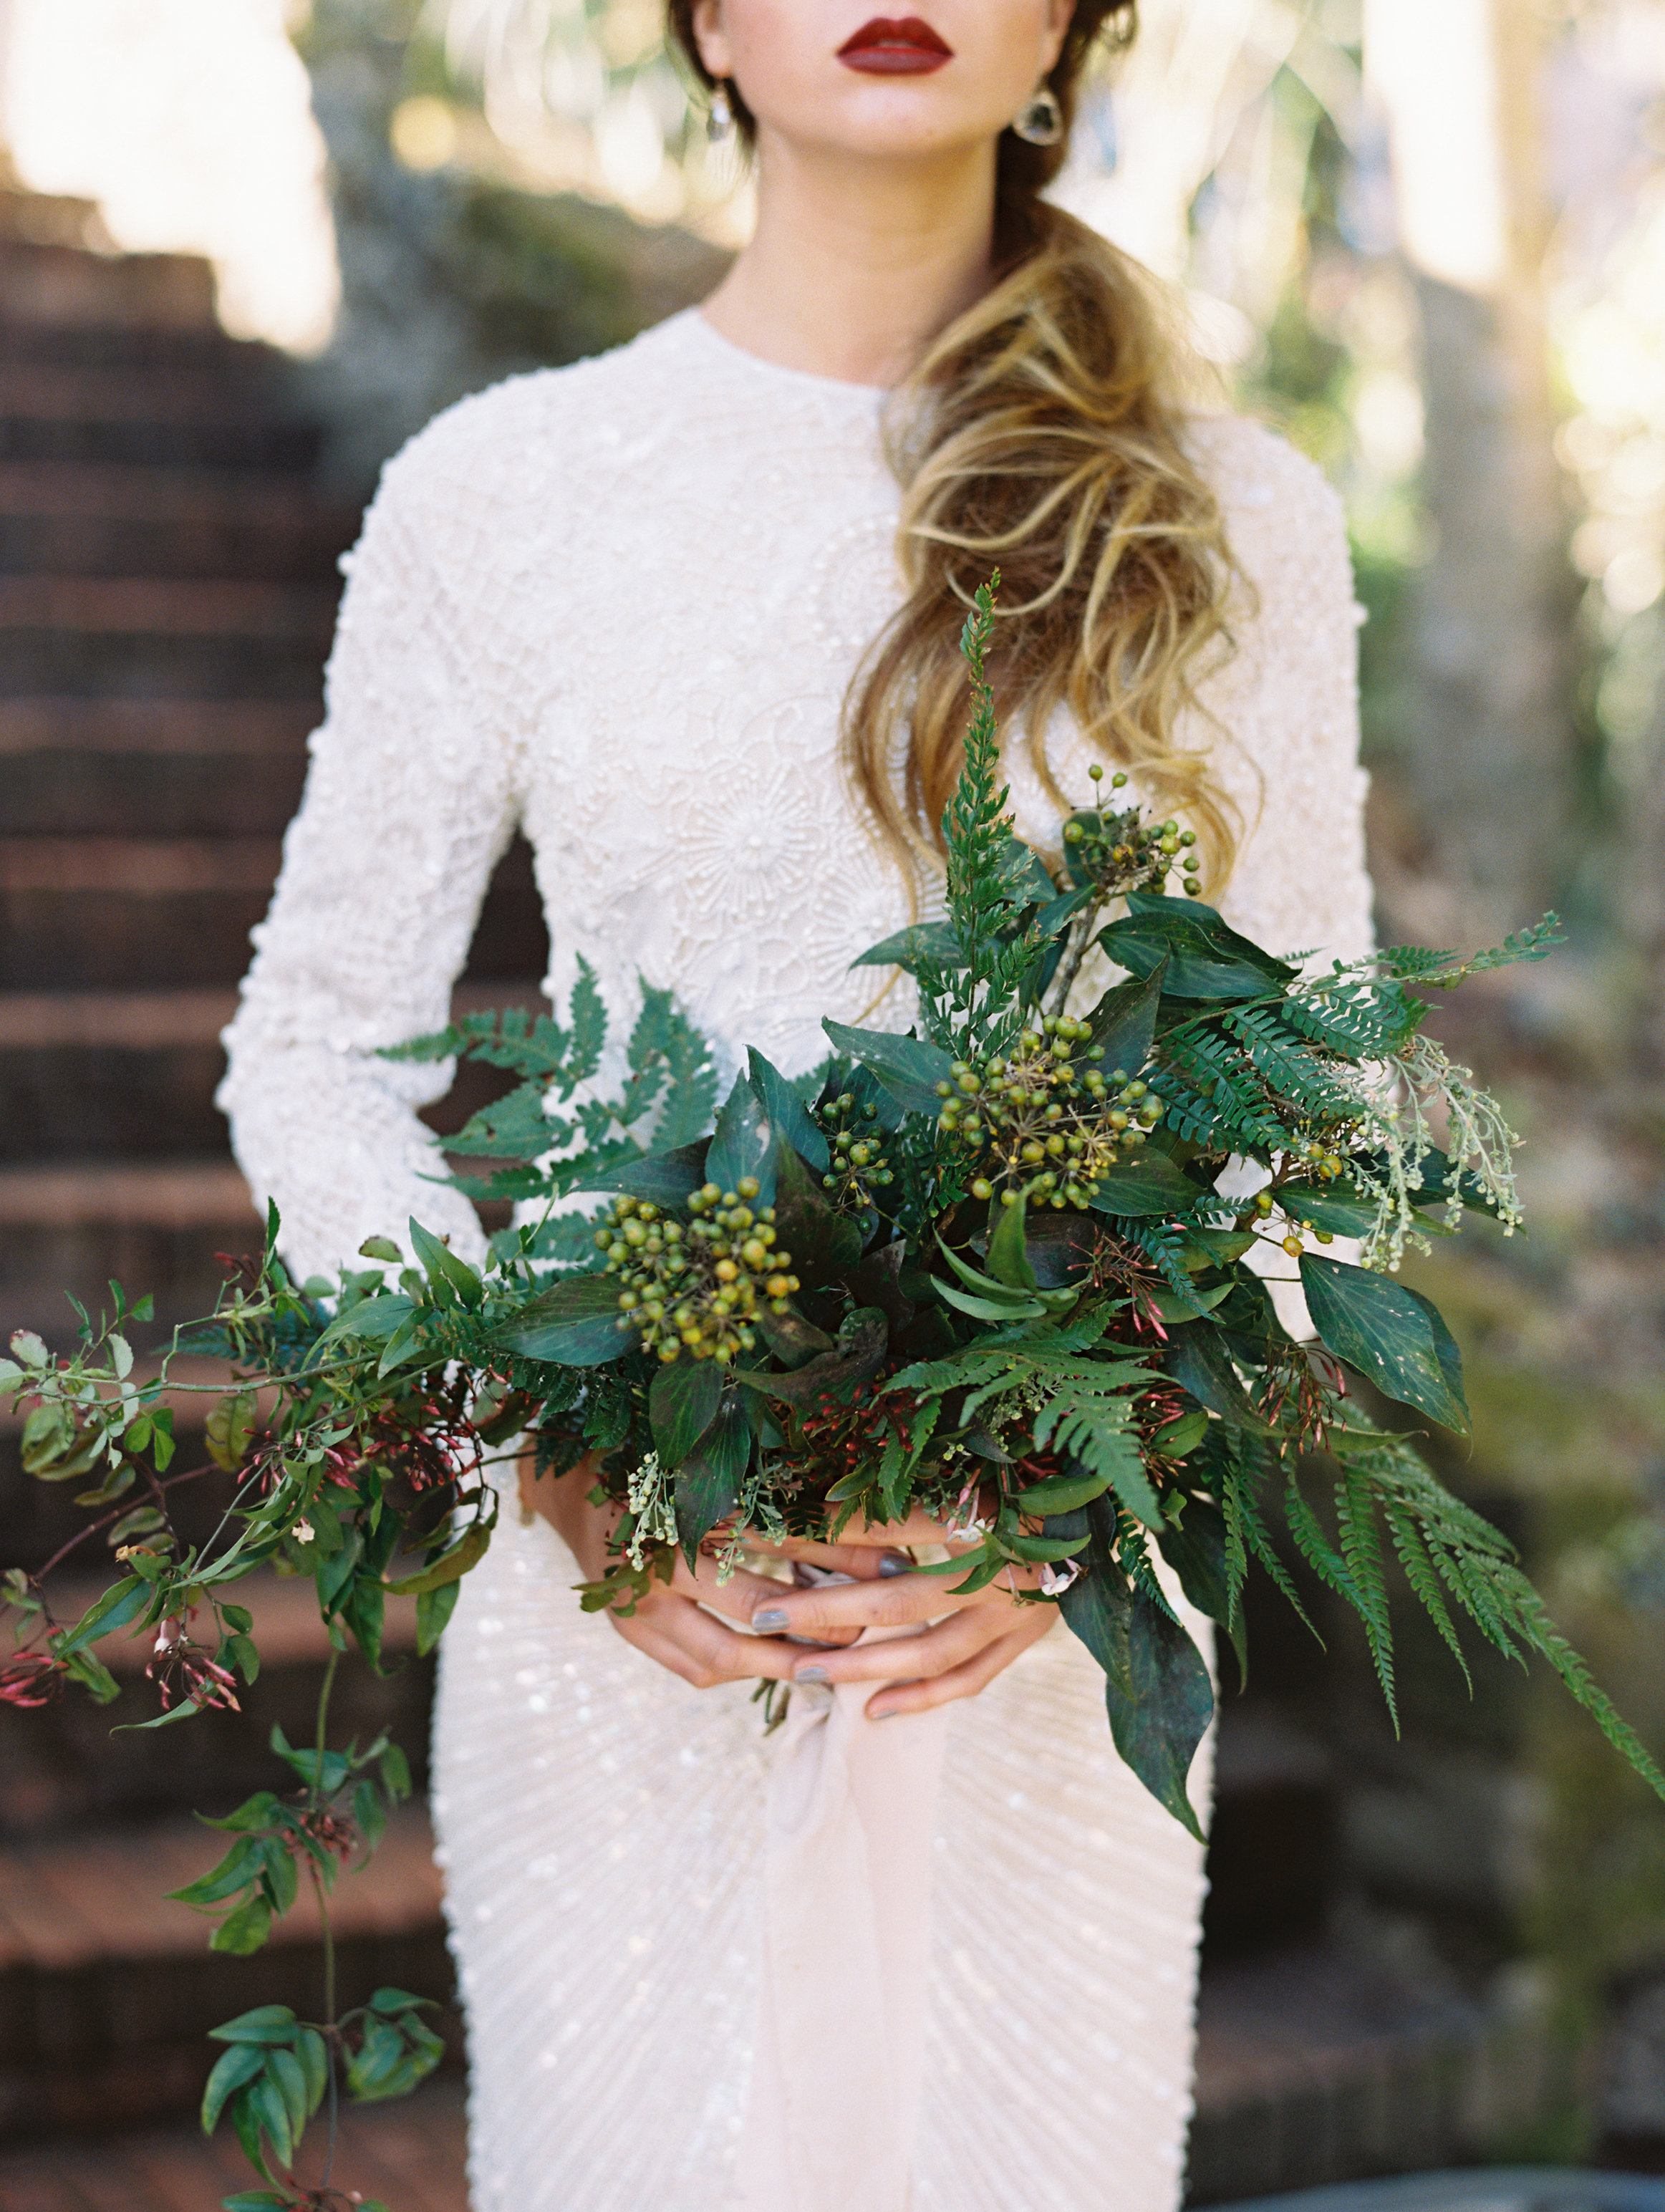 Fern Wedding Bouquet with Only Greenery